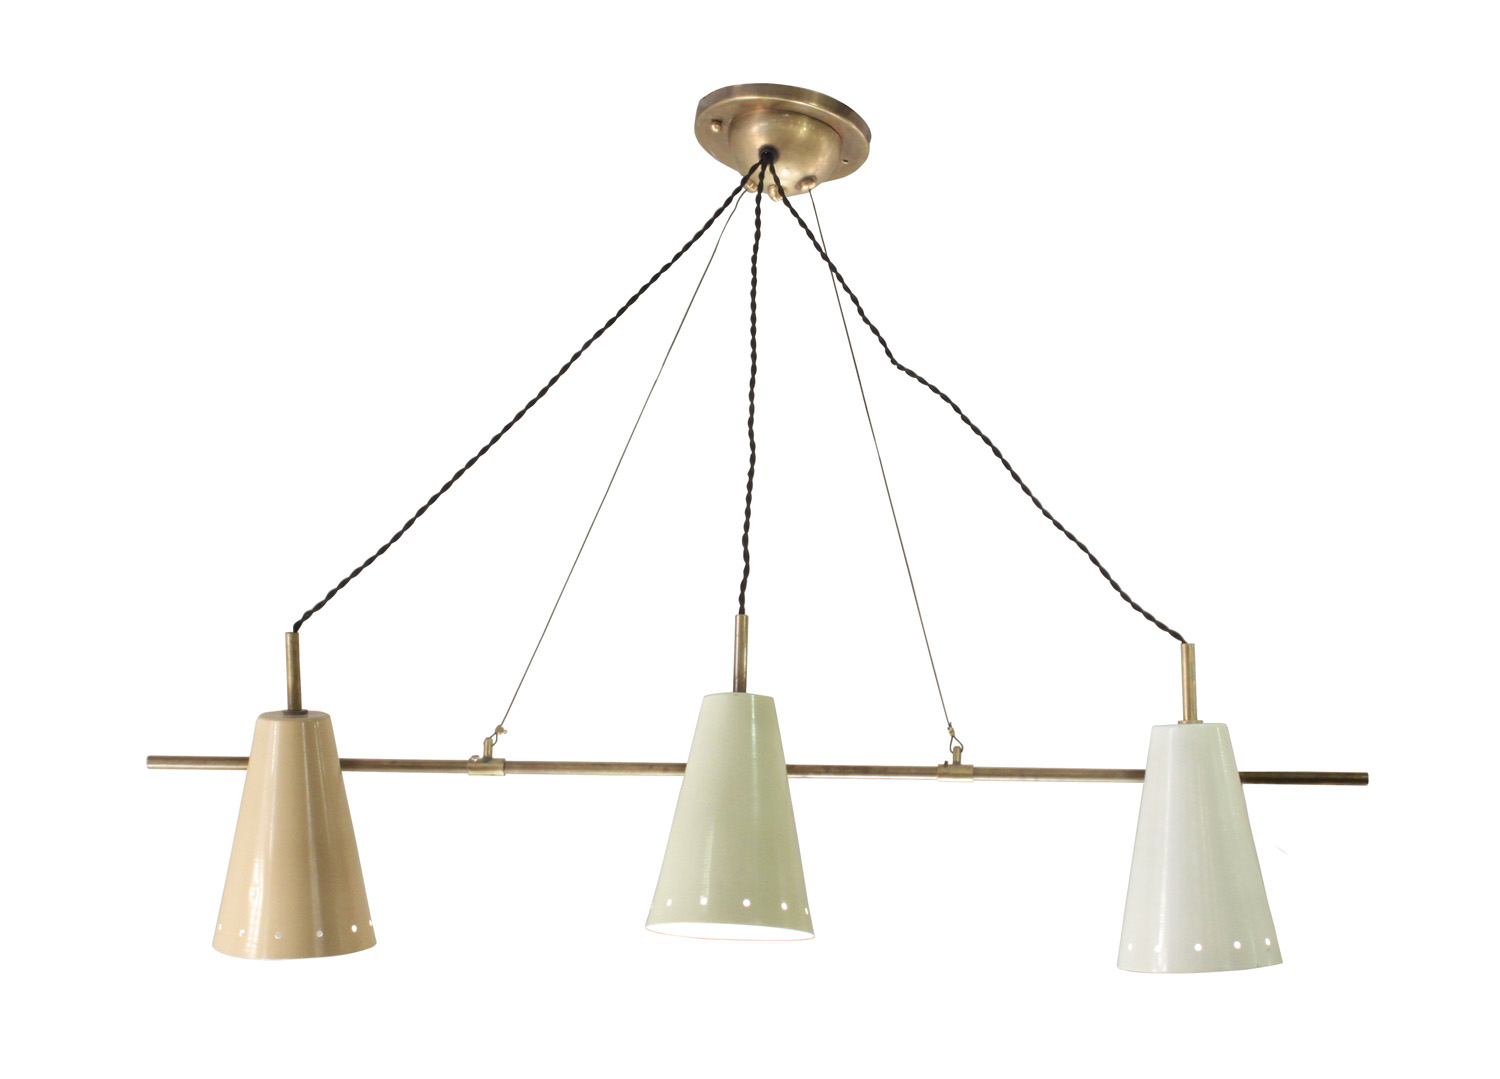 Arredoluce 55 cone shades on rod chandelier208 hires.jpg